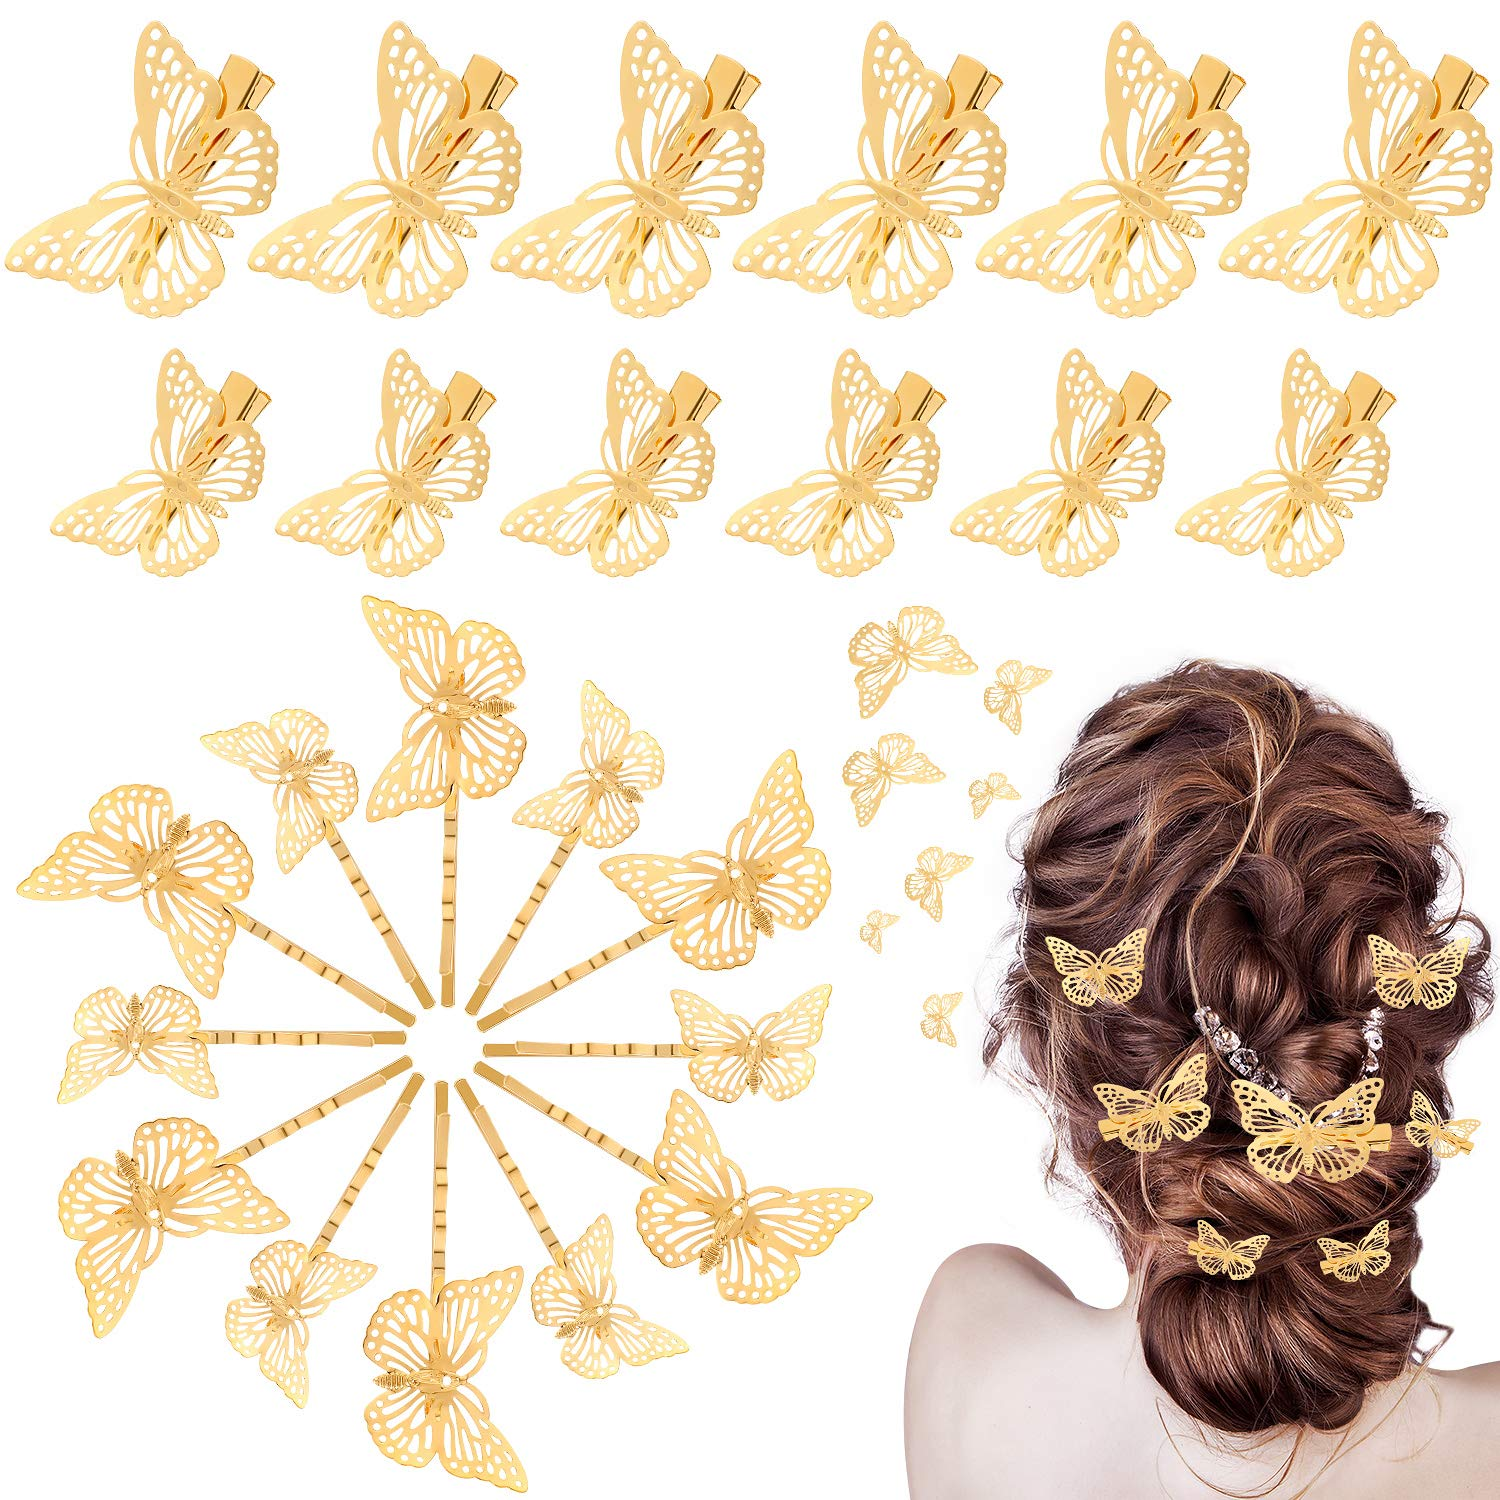 Max 44% OFF 24 Pieces Butterfly Popularity Hair Clips Metal Clamps